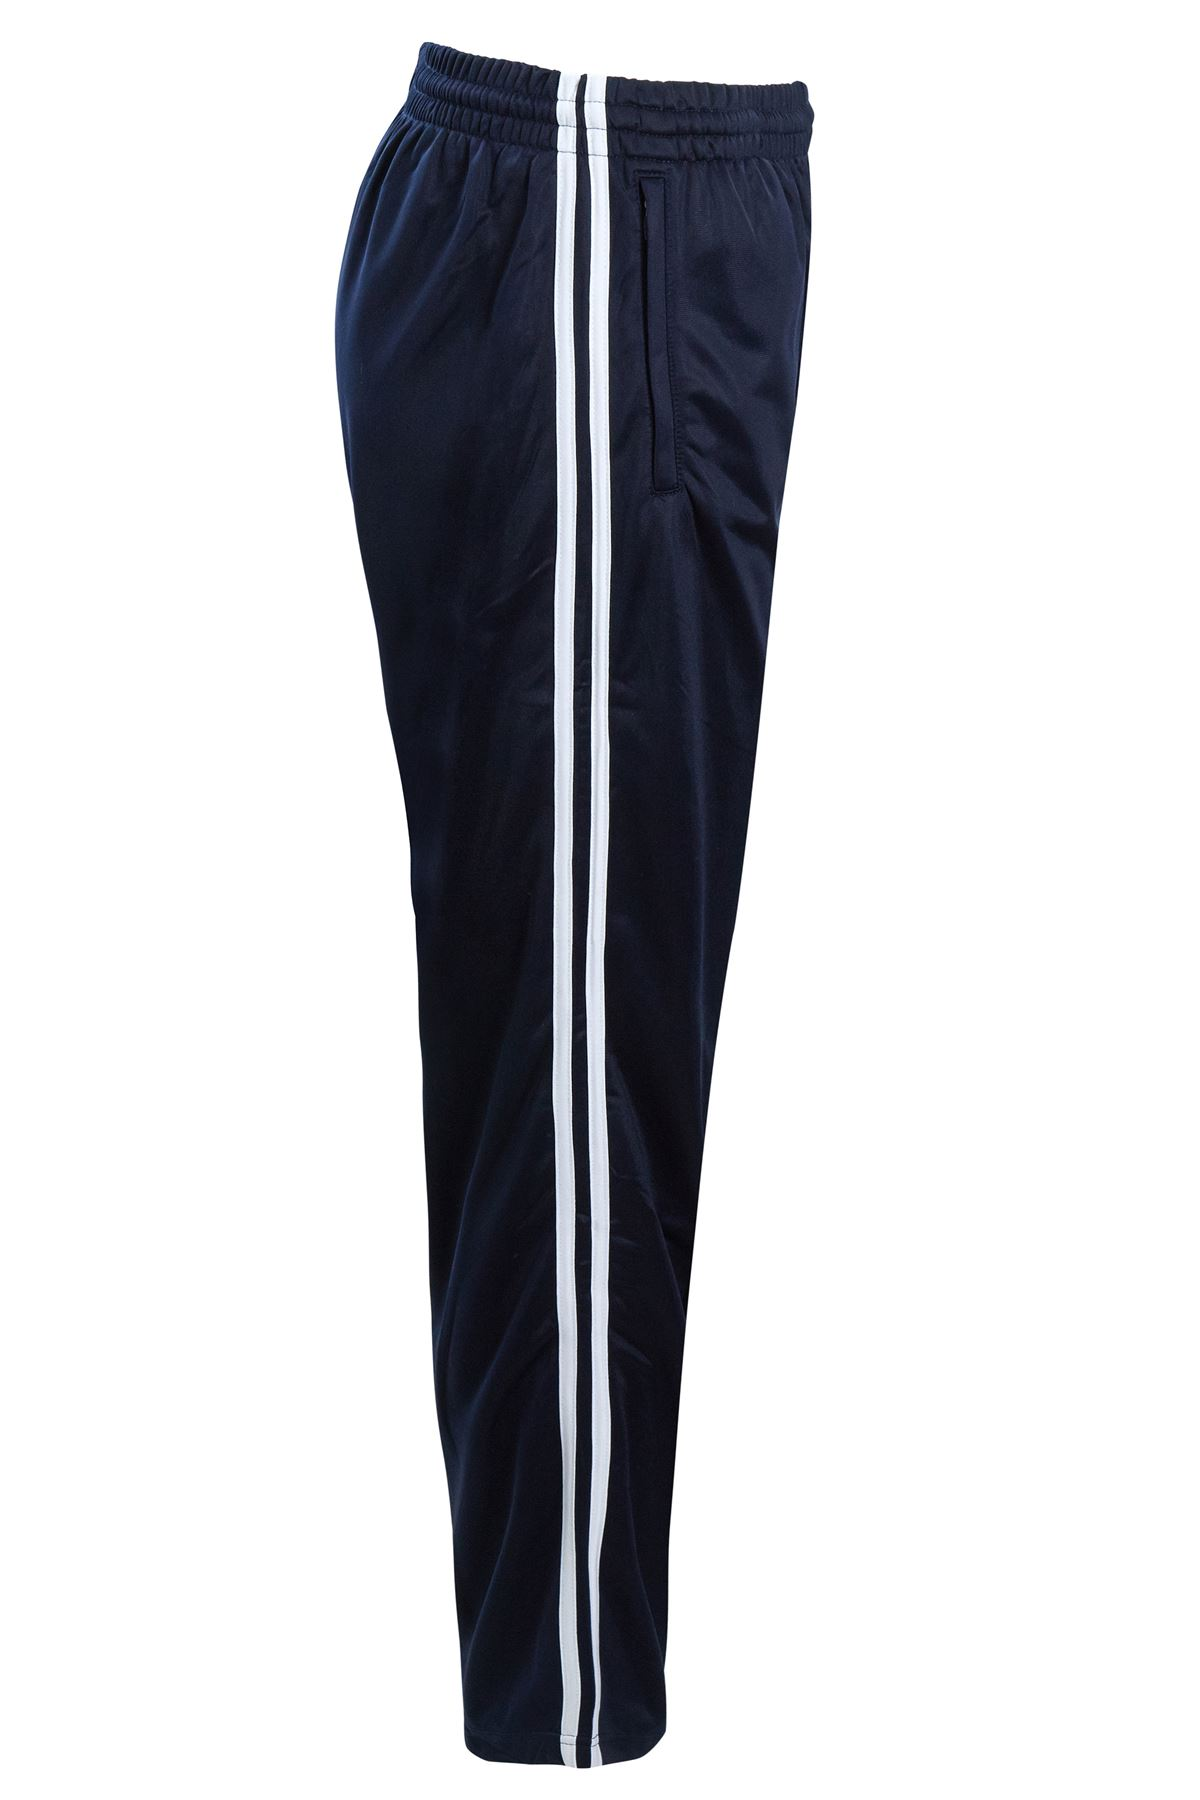 Mens-Tracksuit-Joggers-Jogging-Striped-Gym-Sports-Silky-Bottoms-Trousers-Pants thumbnail 19